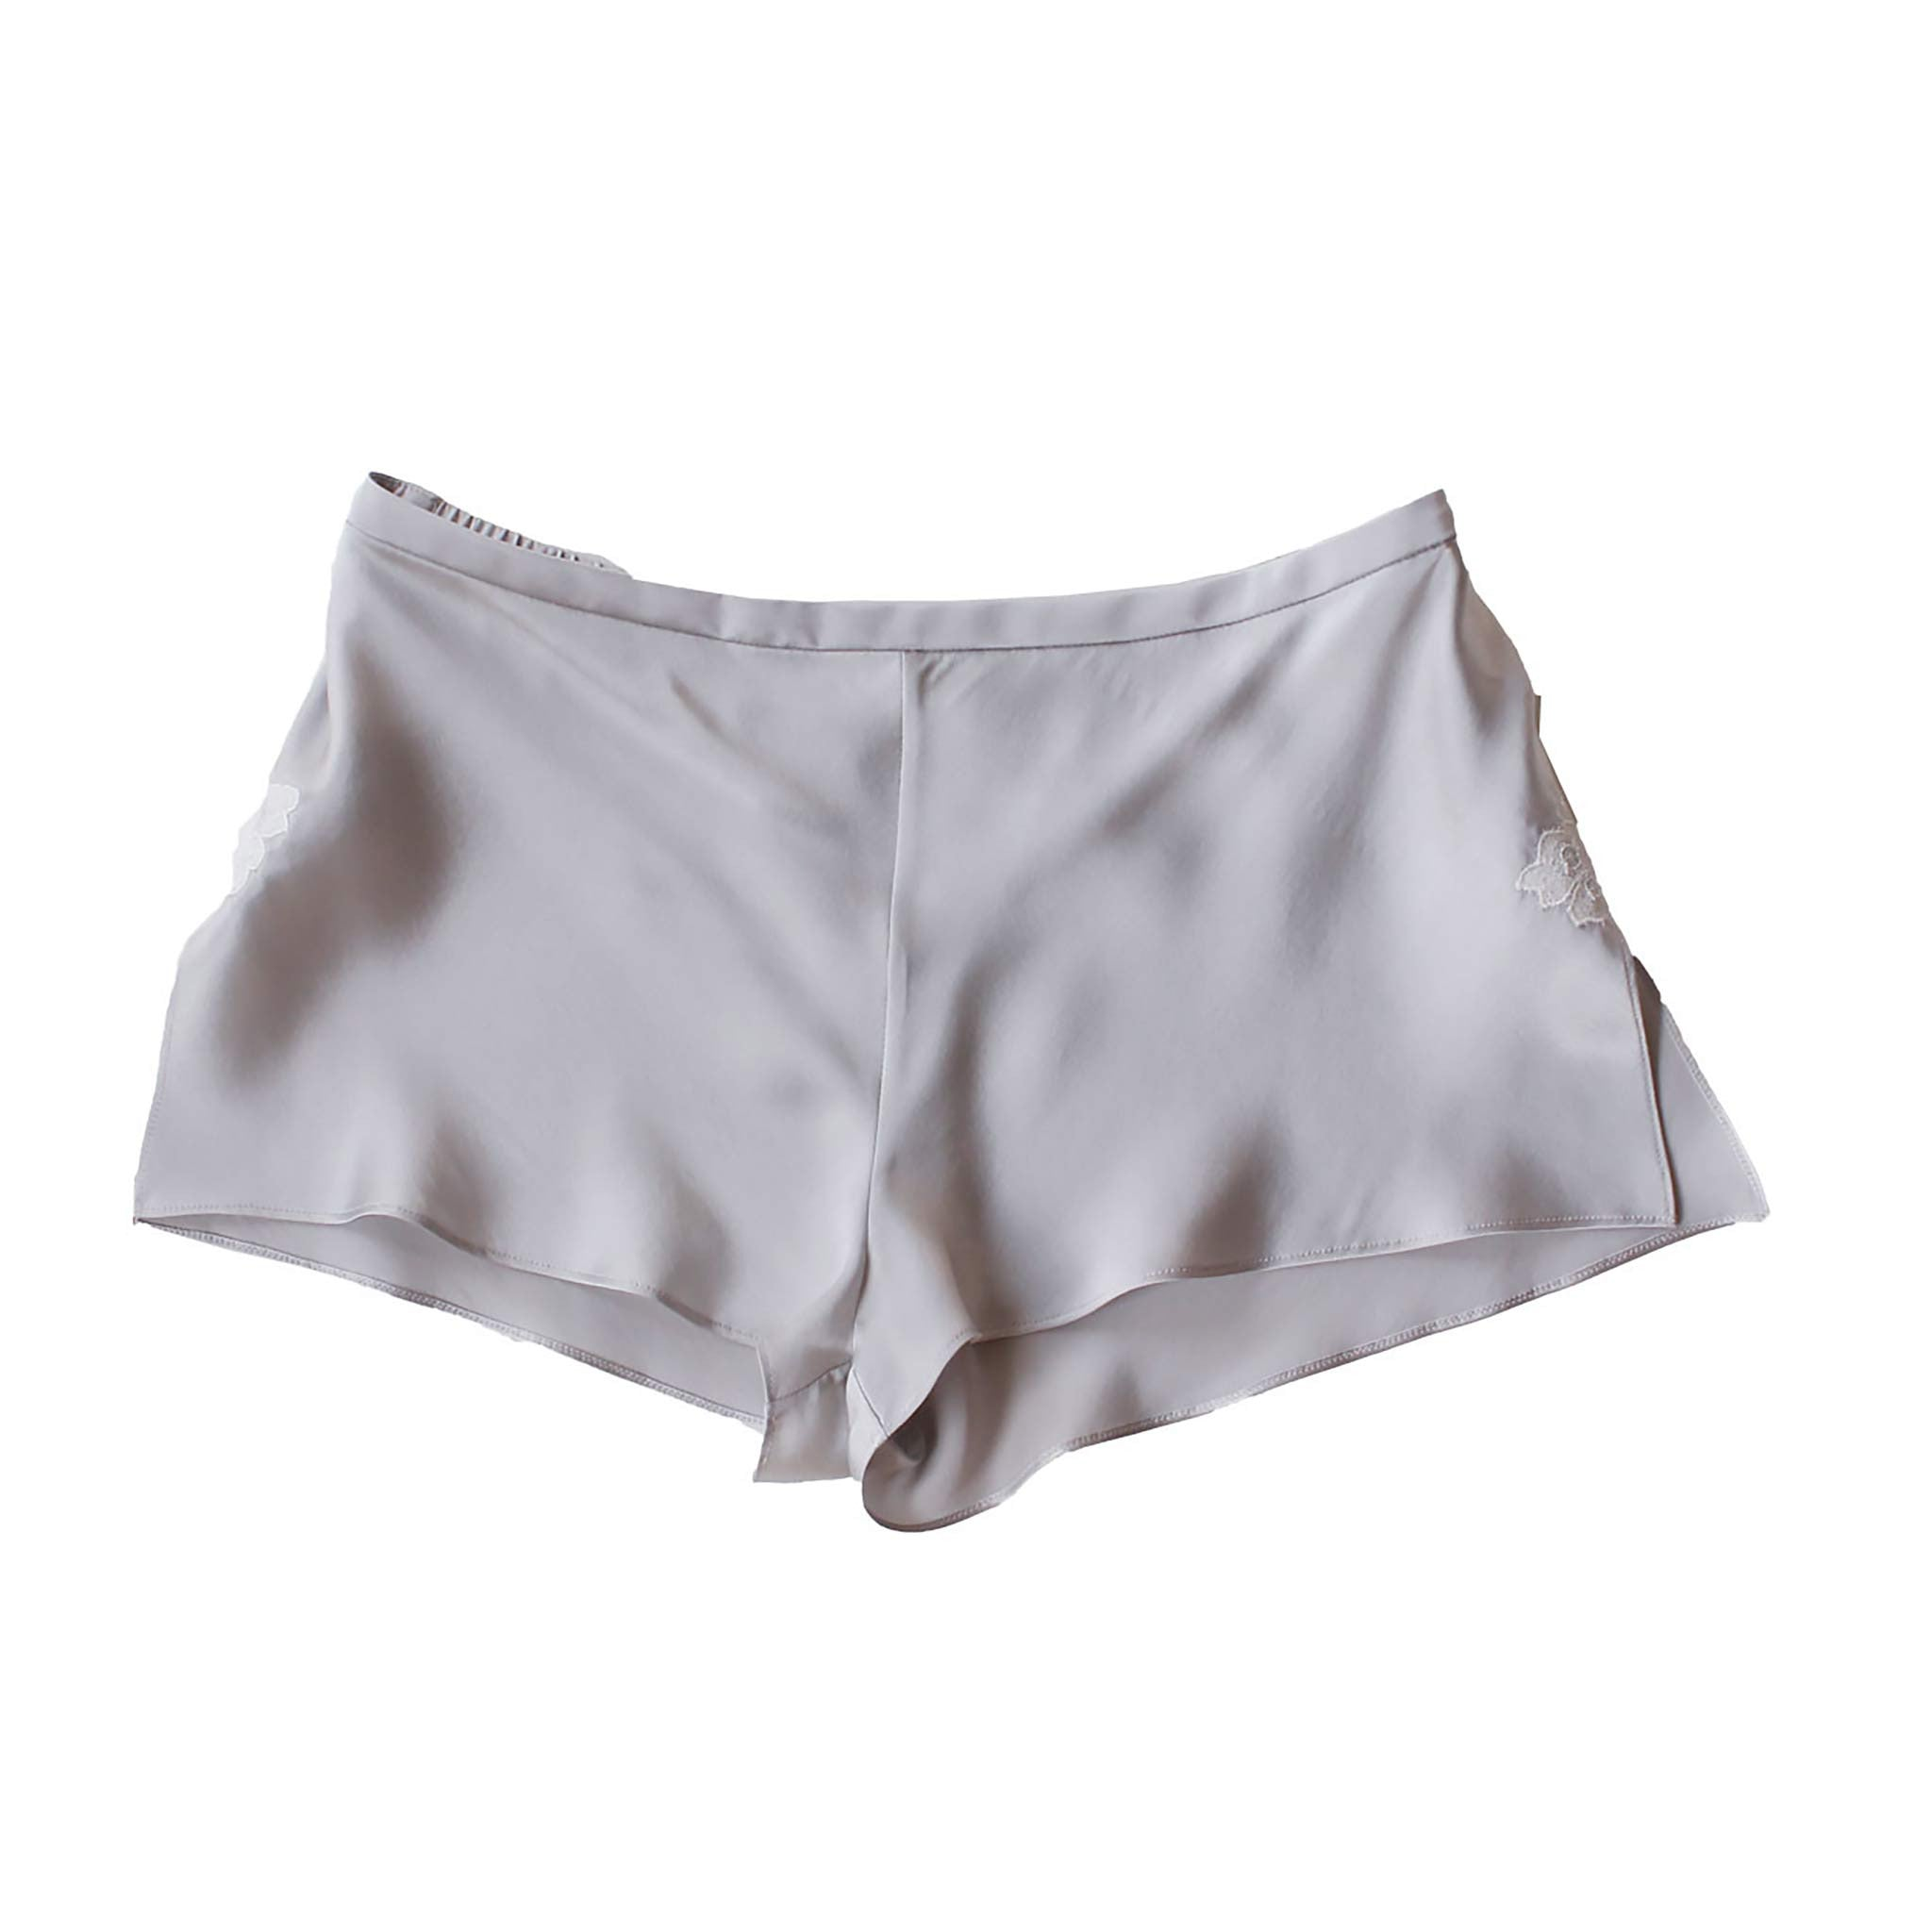 Sita Knickers in Platinum Silk Charmeuse